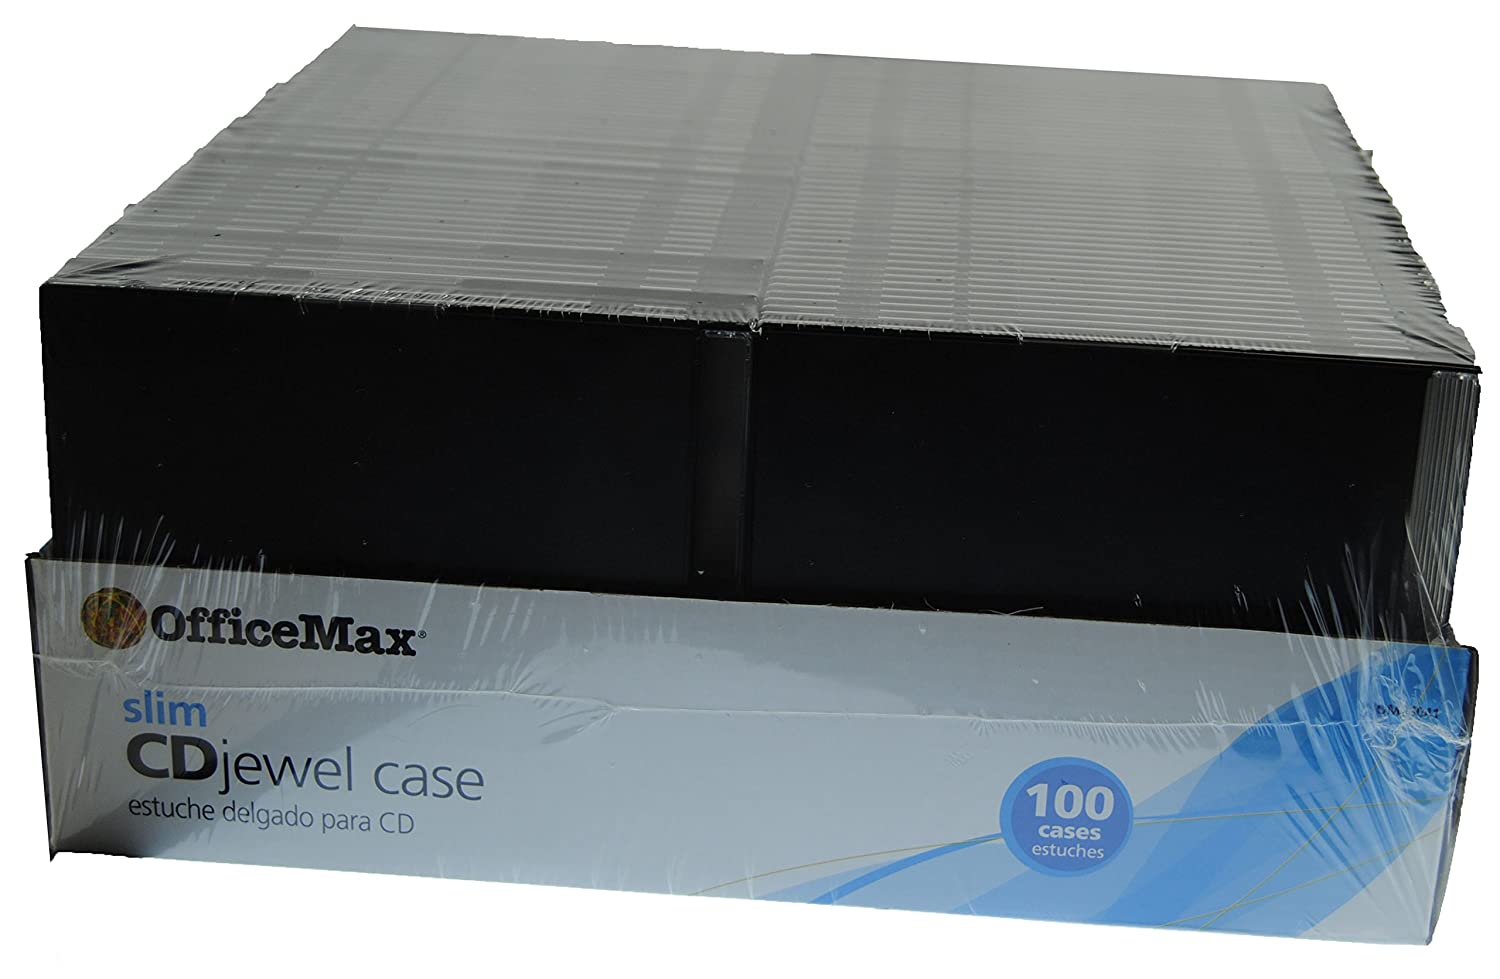 Amazon.com: OfficeMax 100-Pack Slimline CD/DVD Jewel Cases ...